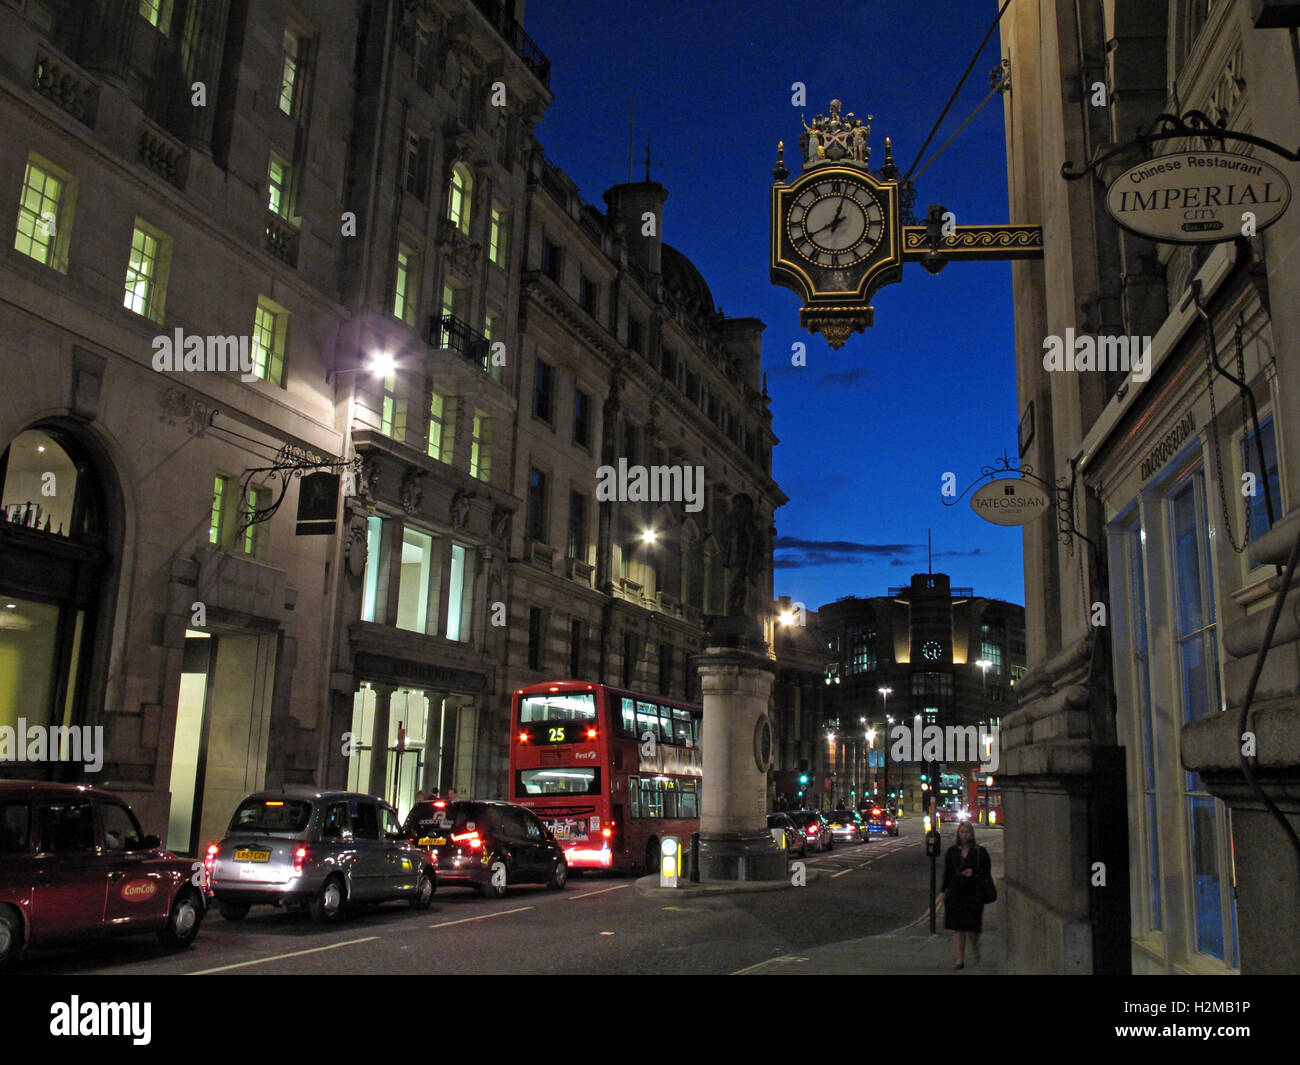 Cornhill City of London, England, UK at dusk - Stock Image